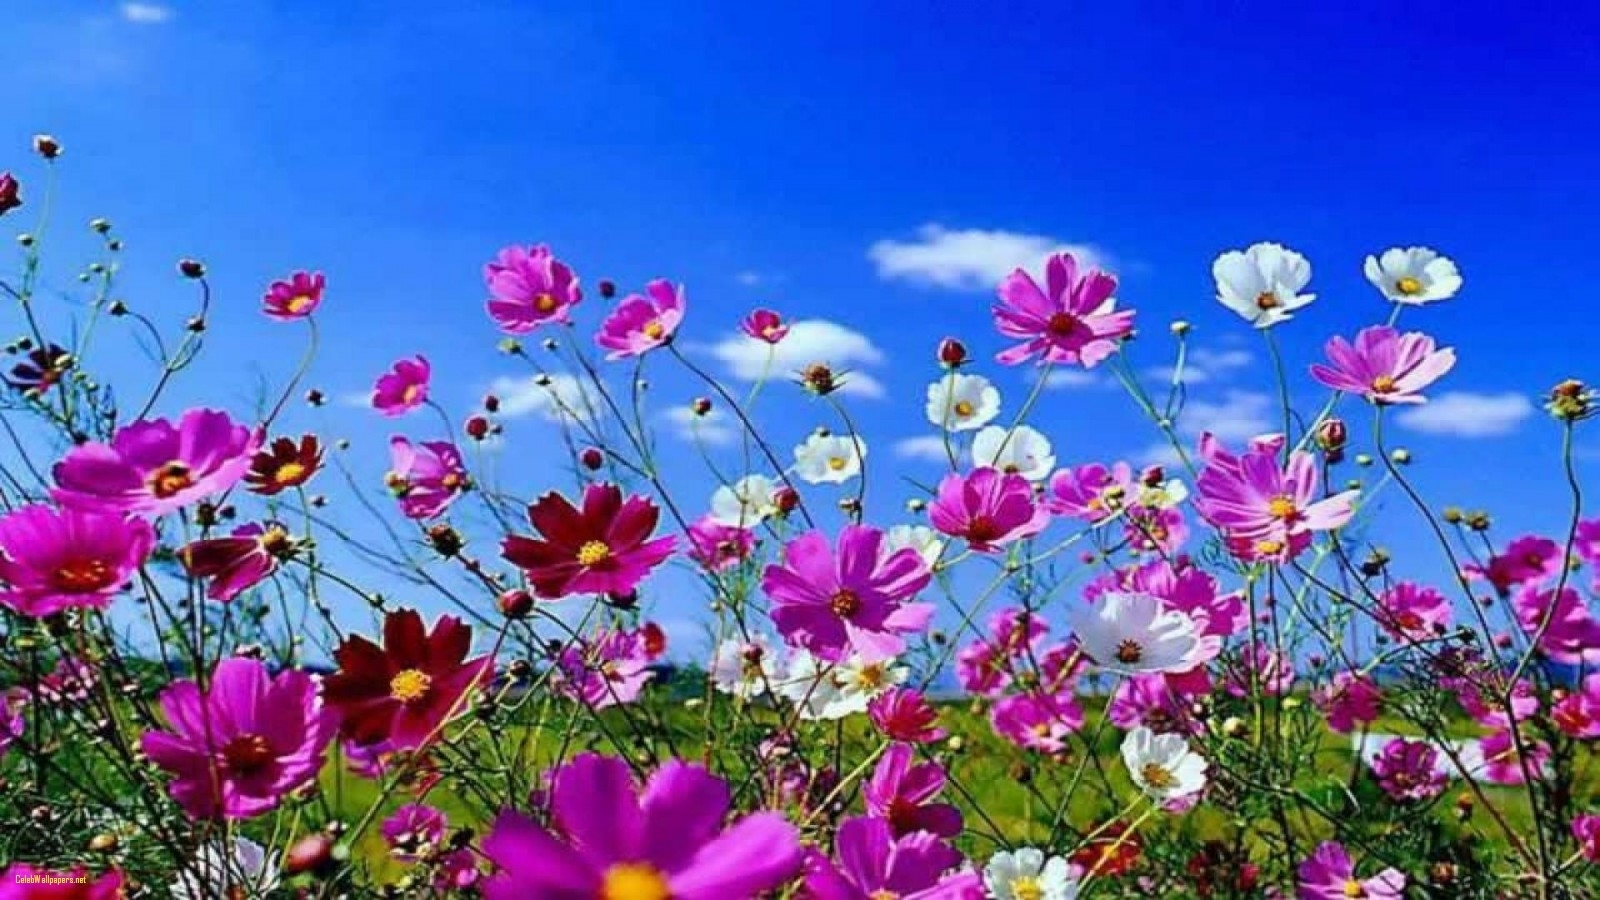 free best wallpaper images flowers background lovely spring flowers